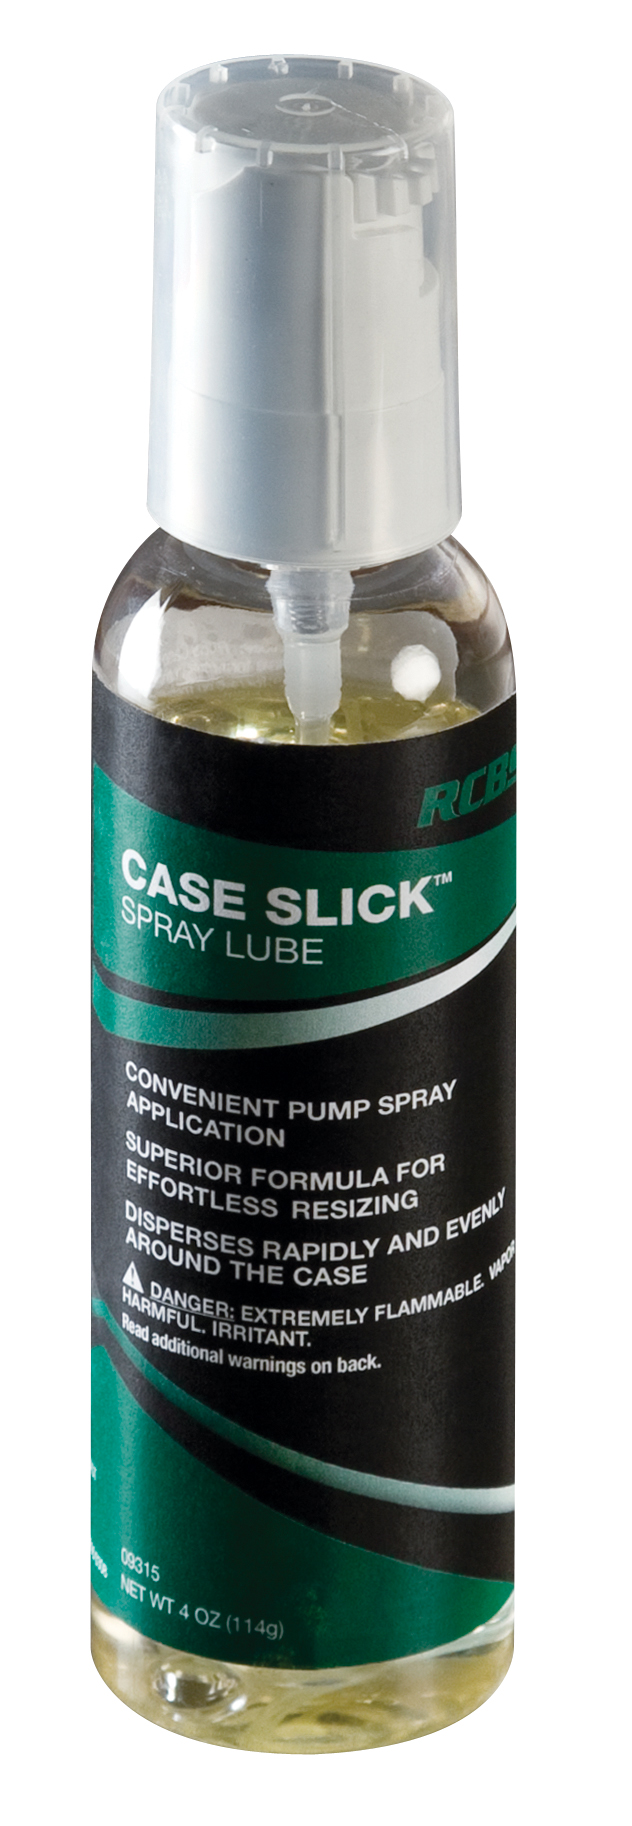 Case Slick Spray Lube